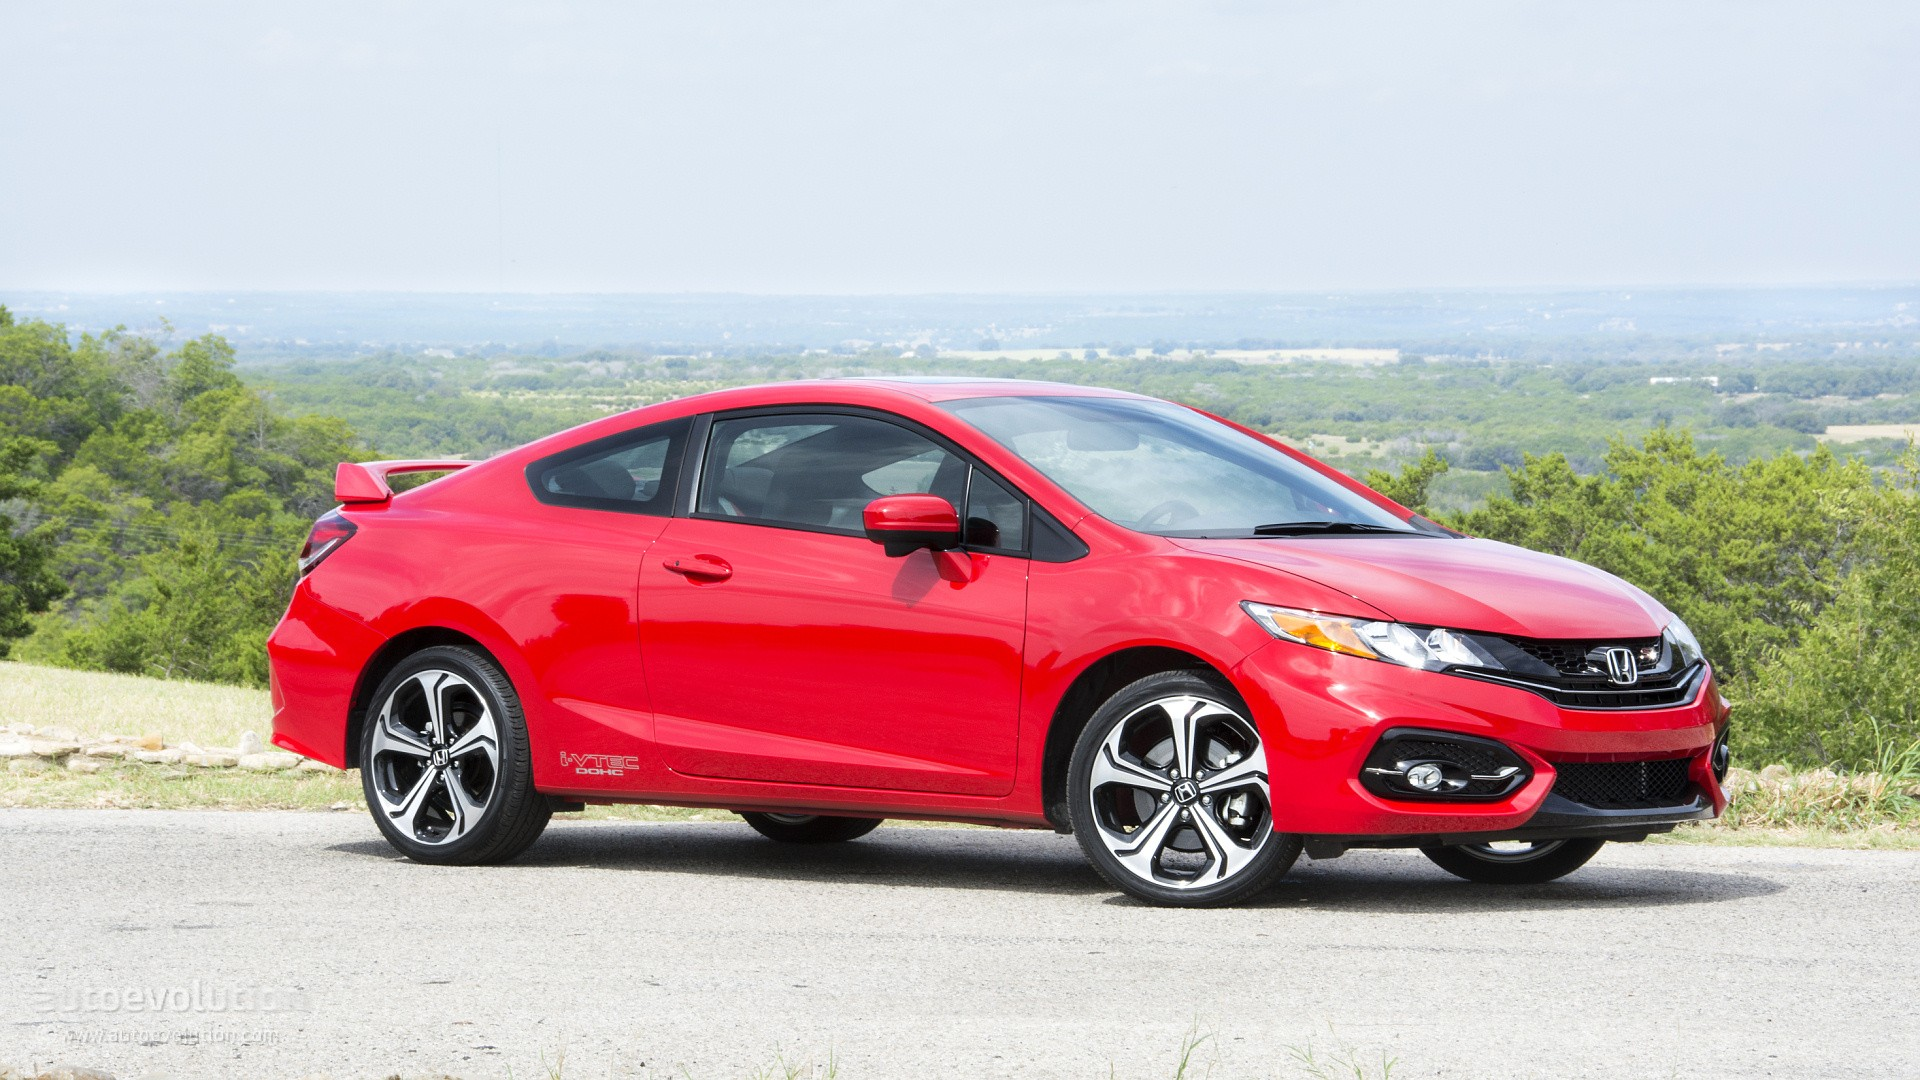 2015 honda civic si coupe review autoevolution for Si honda civic